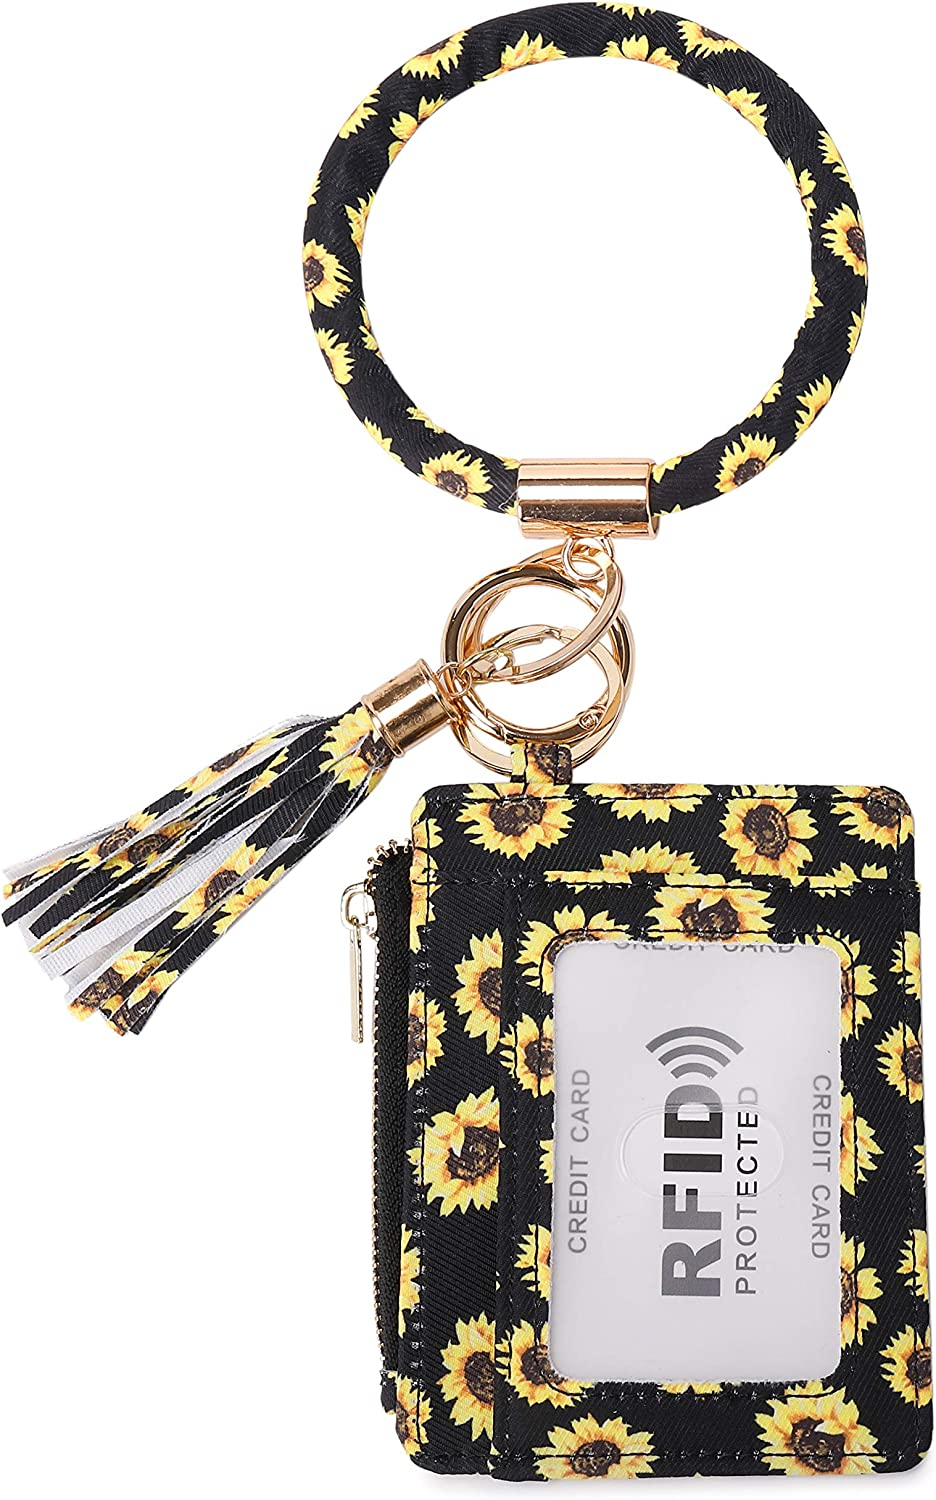 Keychain Wallet for Women RFID Credit Max 41% OFF With Card Holder Blocking Over item handling ☆